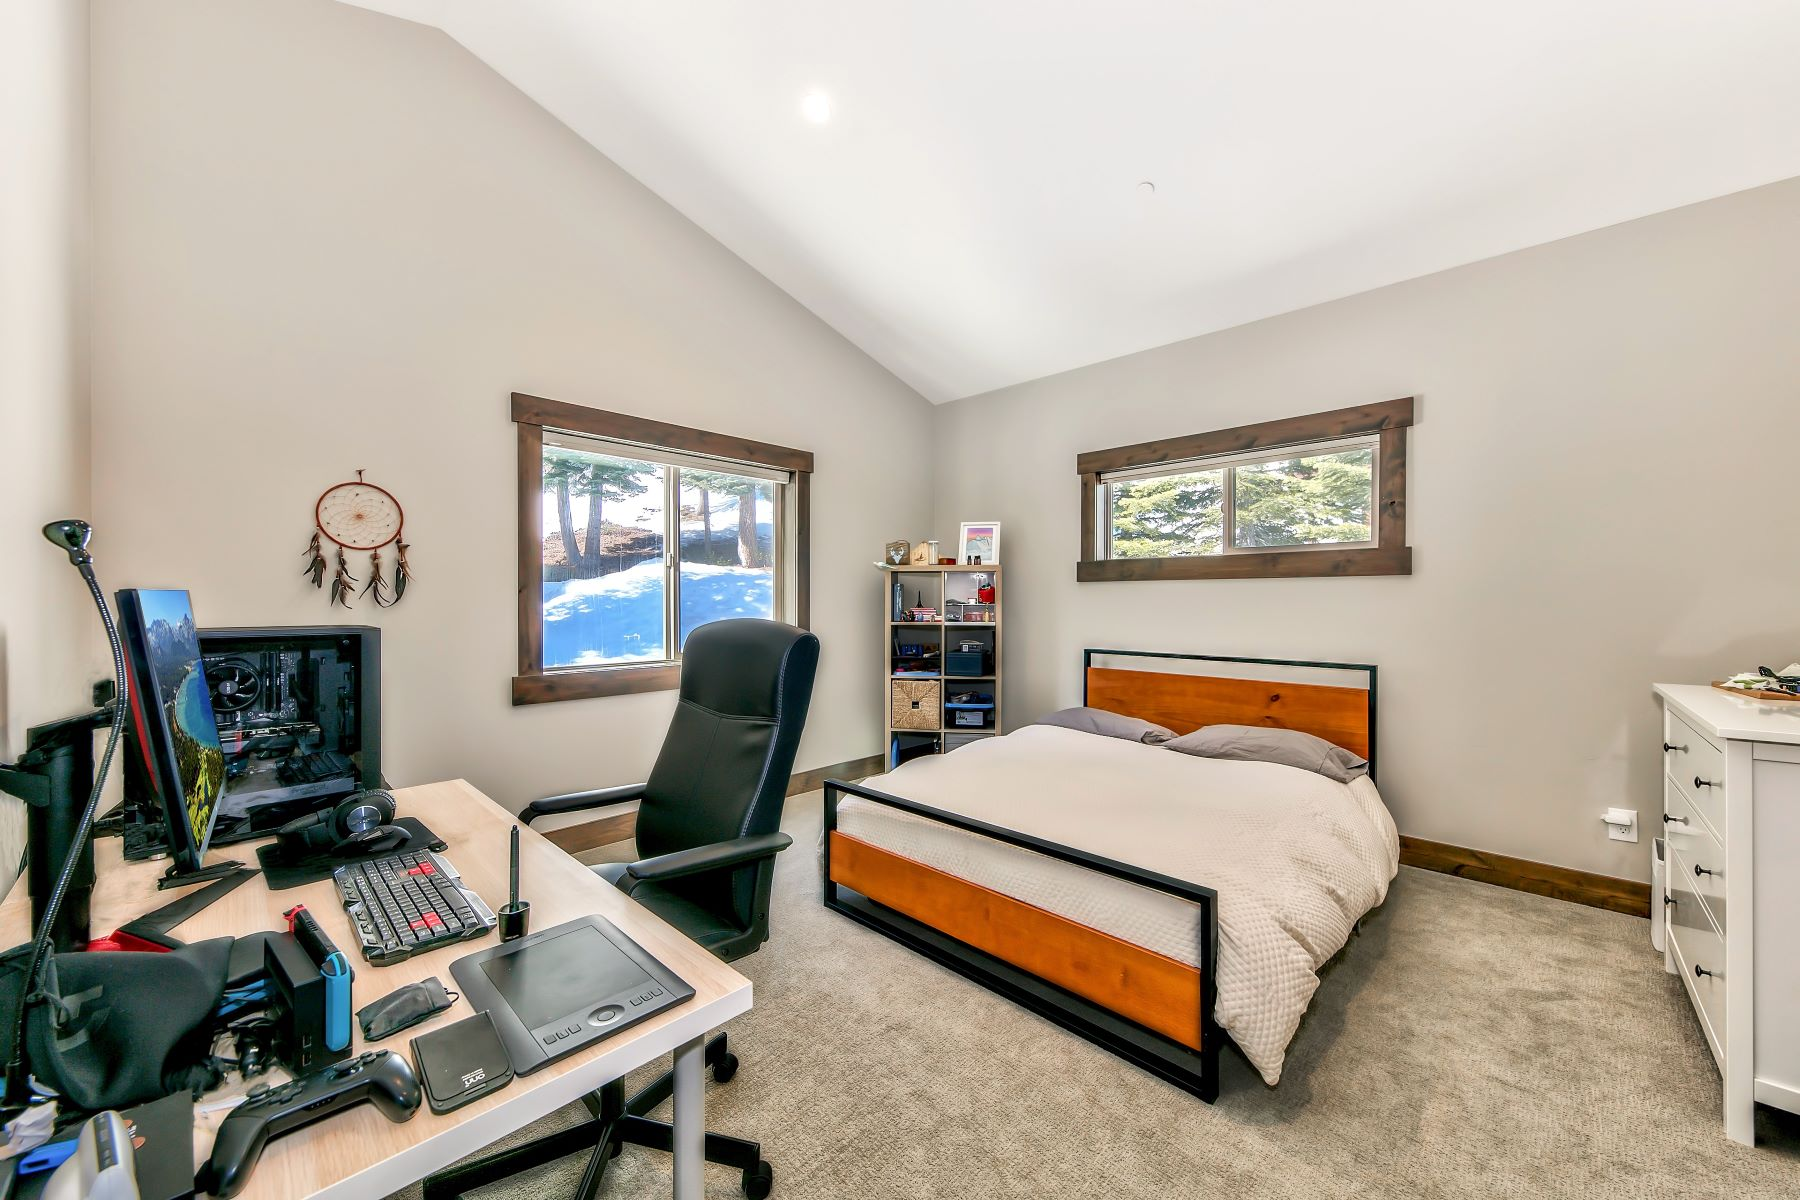 Additional photo for property listing at Magnificent Tahoe Donner Home 14204 Skislope Way Truckee, California 96161 Estados Unidos